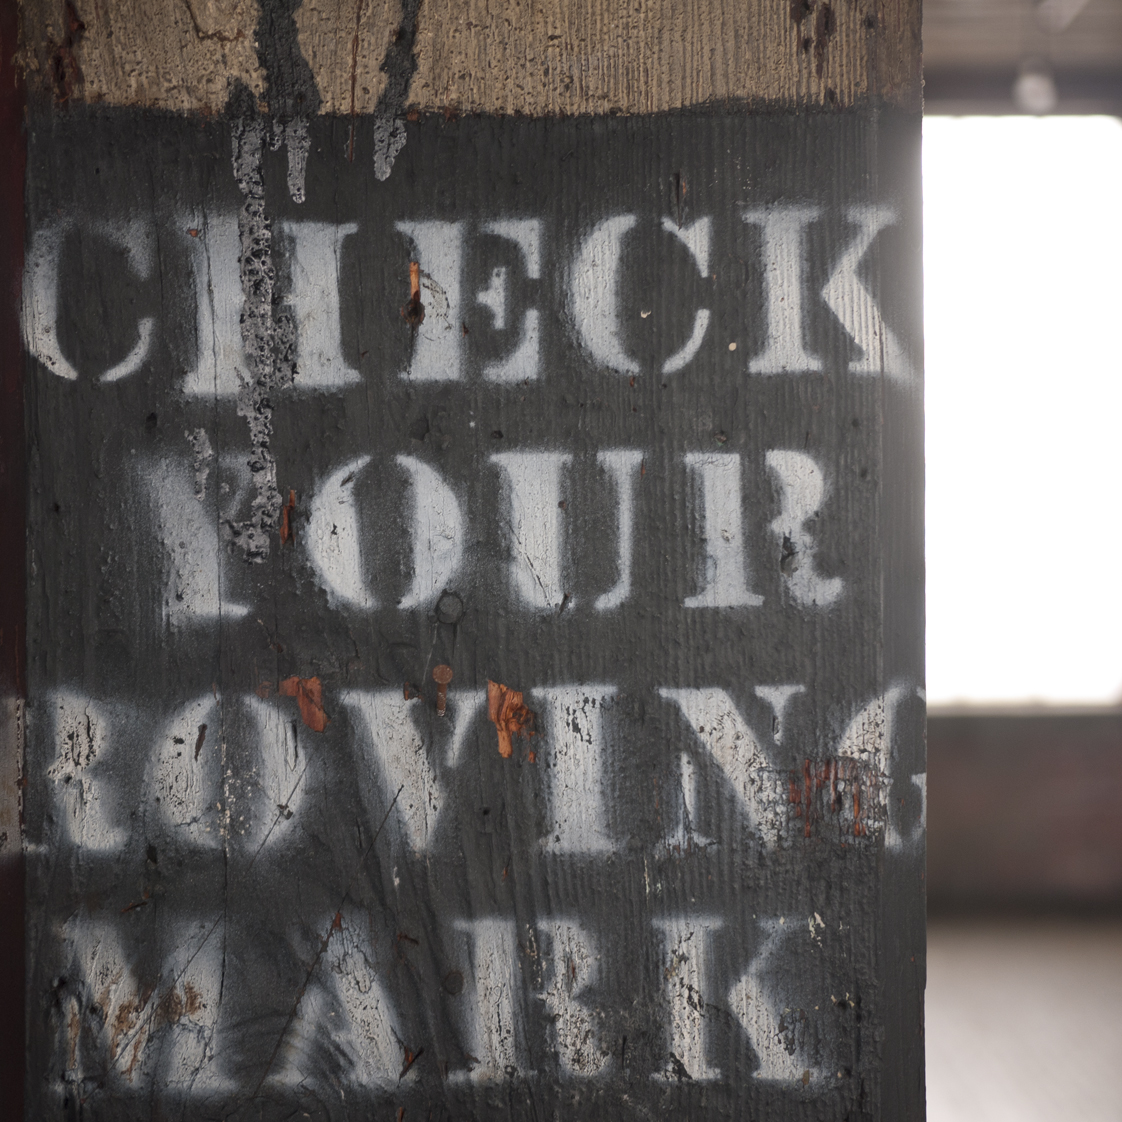 Check Your Mark